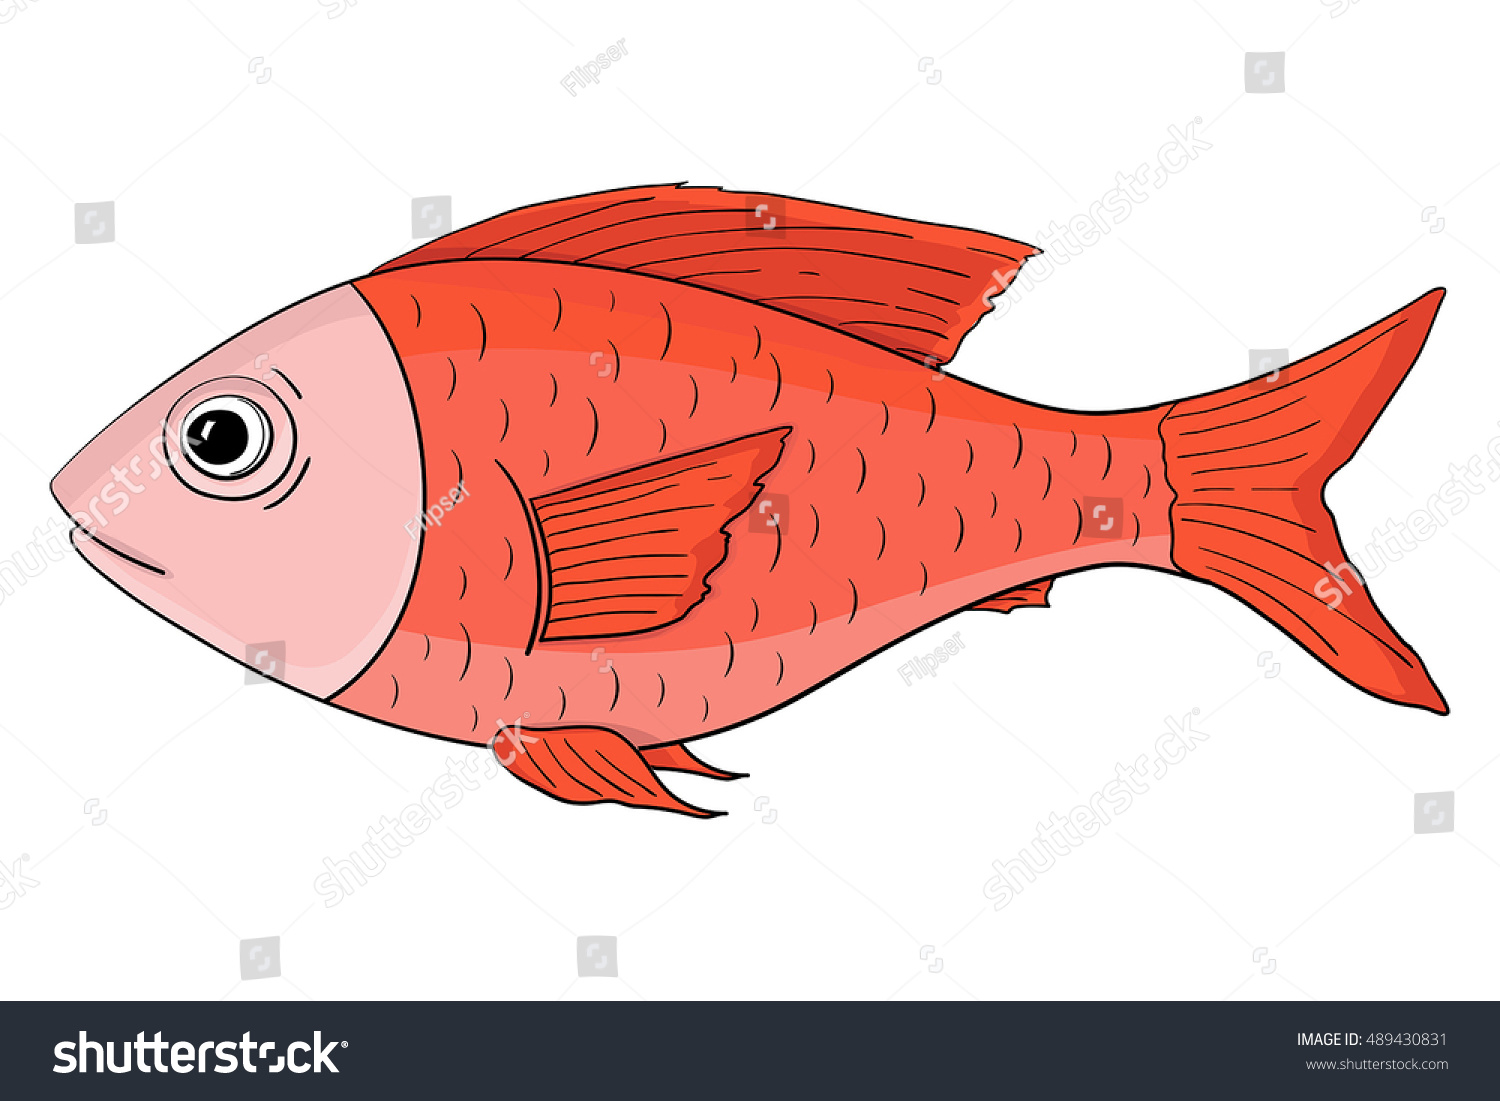 Red Fish Hand Drawn Colored Sketch Stock Vector HD (Royalty Free ...